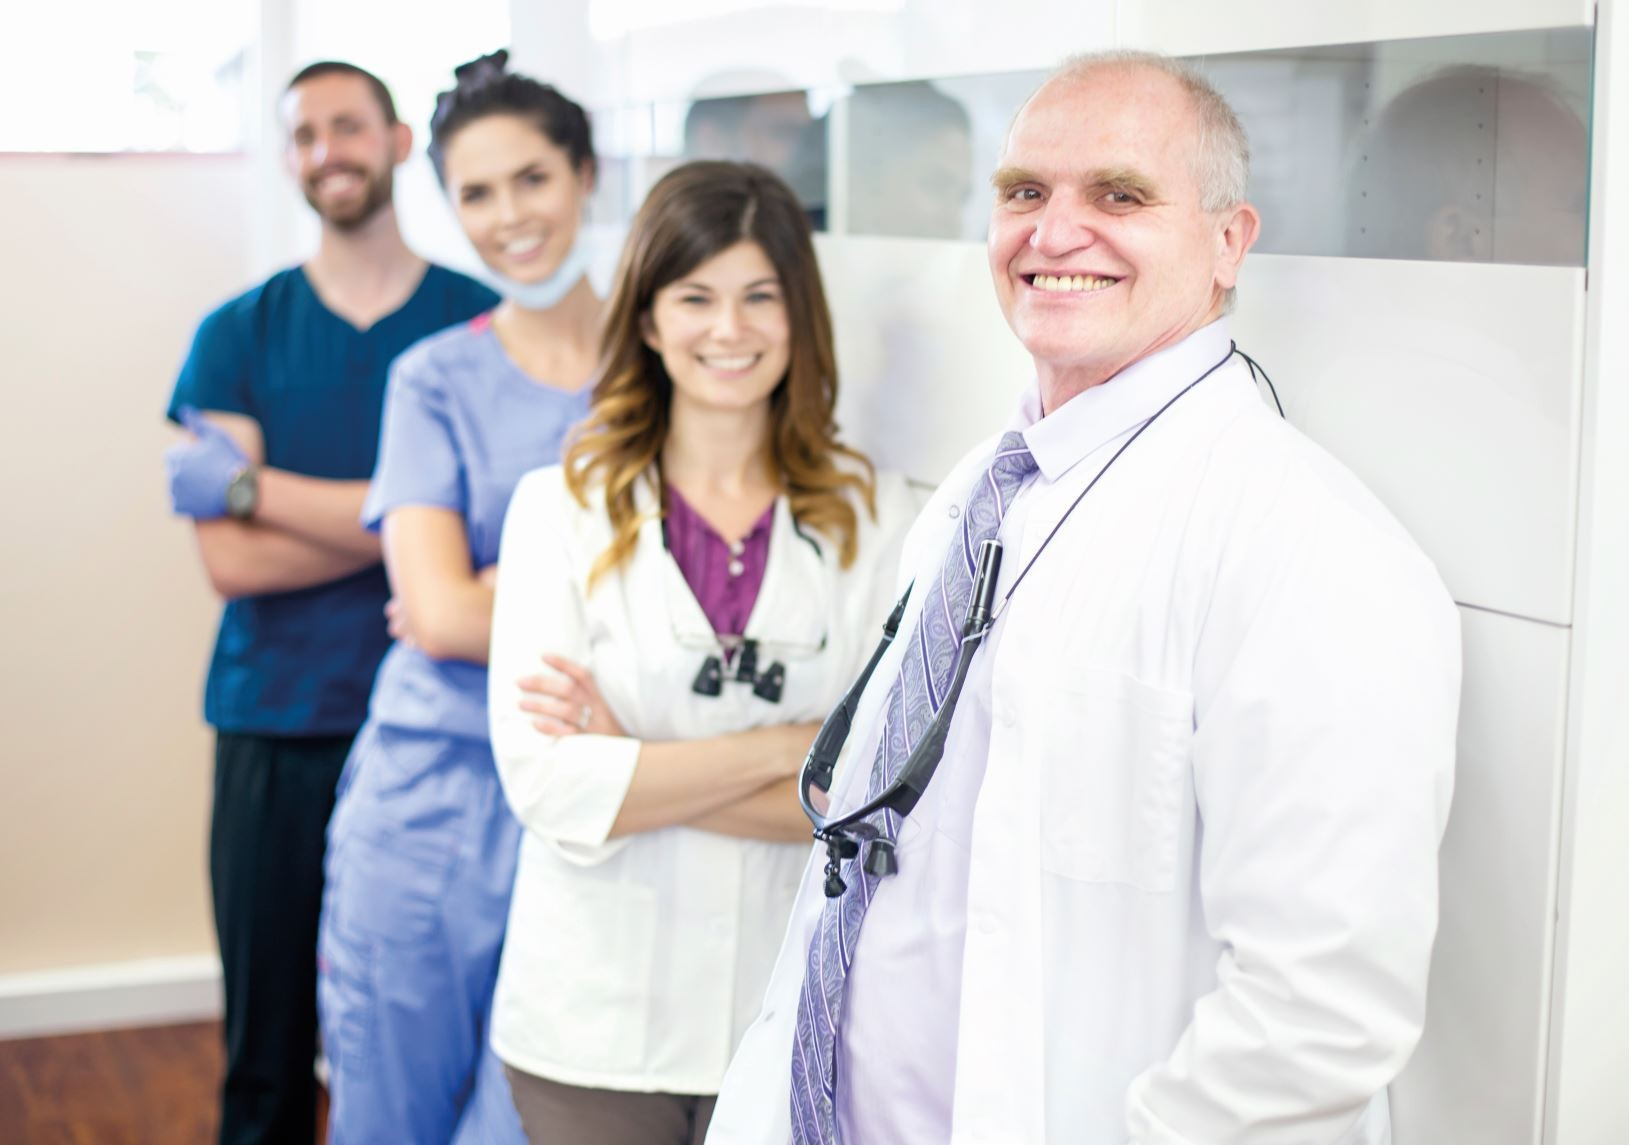 Abc Dental Care practicalities of operating as a dental body corporate | bdj